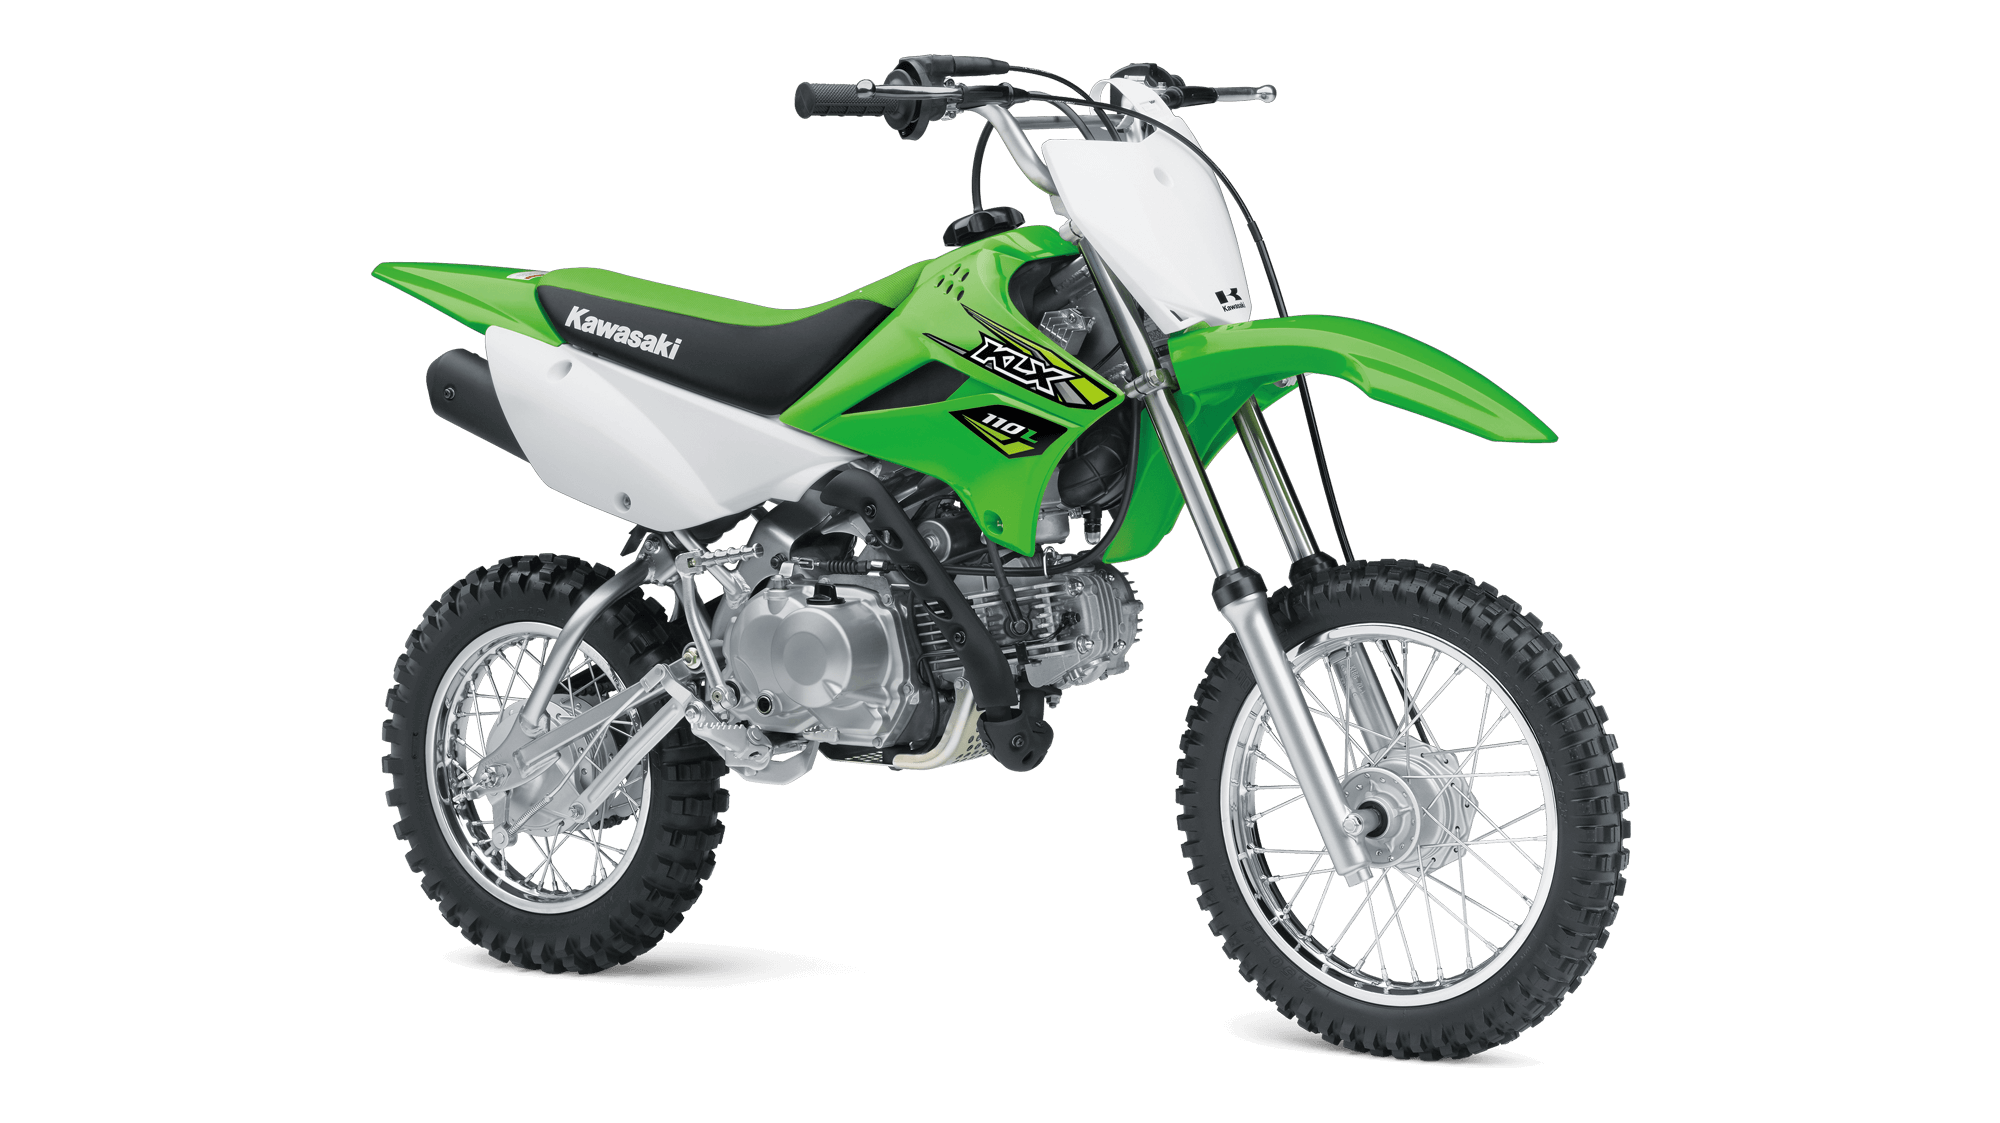 Kawasaki India Let The Good Times Roll W175 Special Edition Silver Klx 110